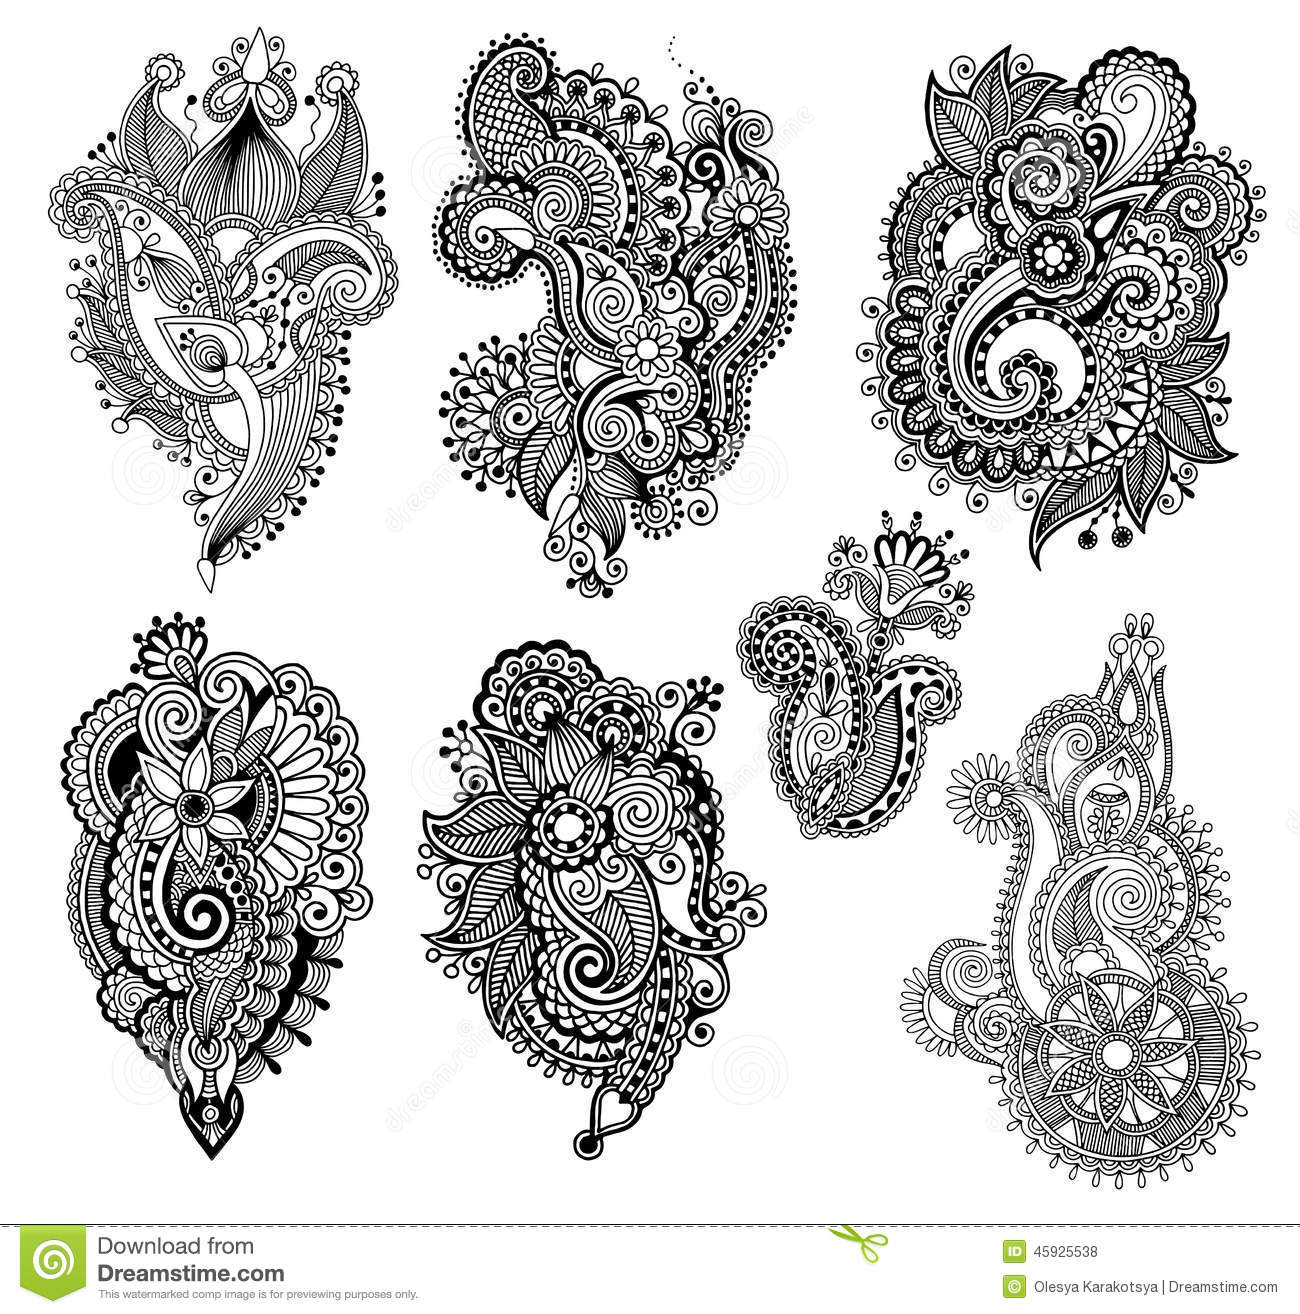 Floral Art Line Design : Black line art ornate flower design collection stock